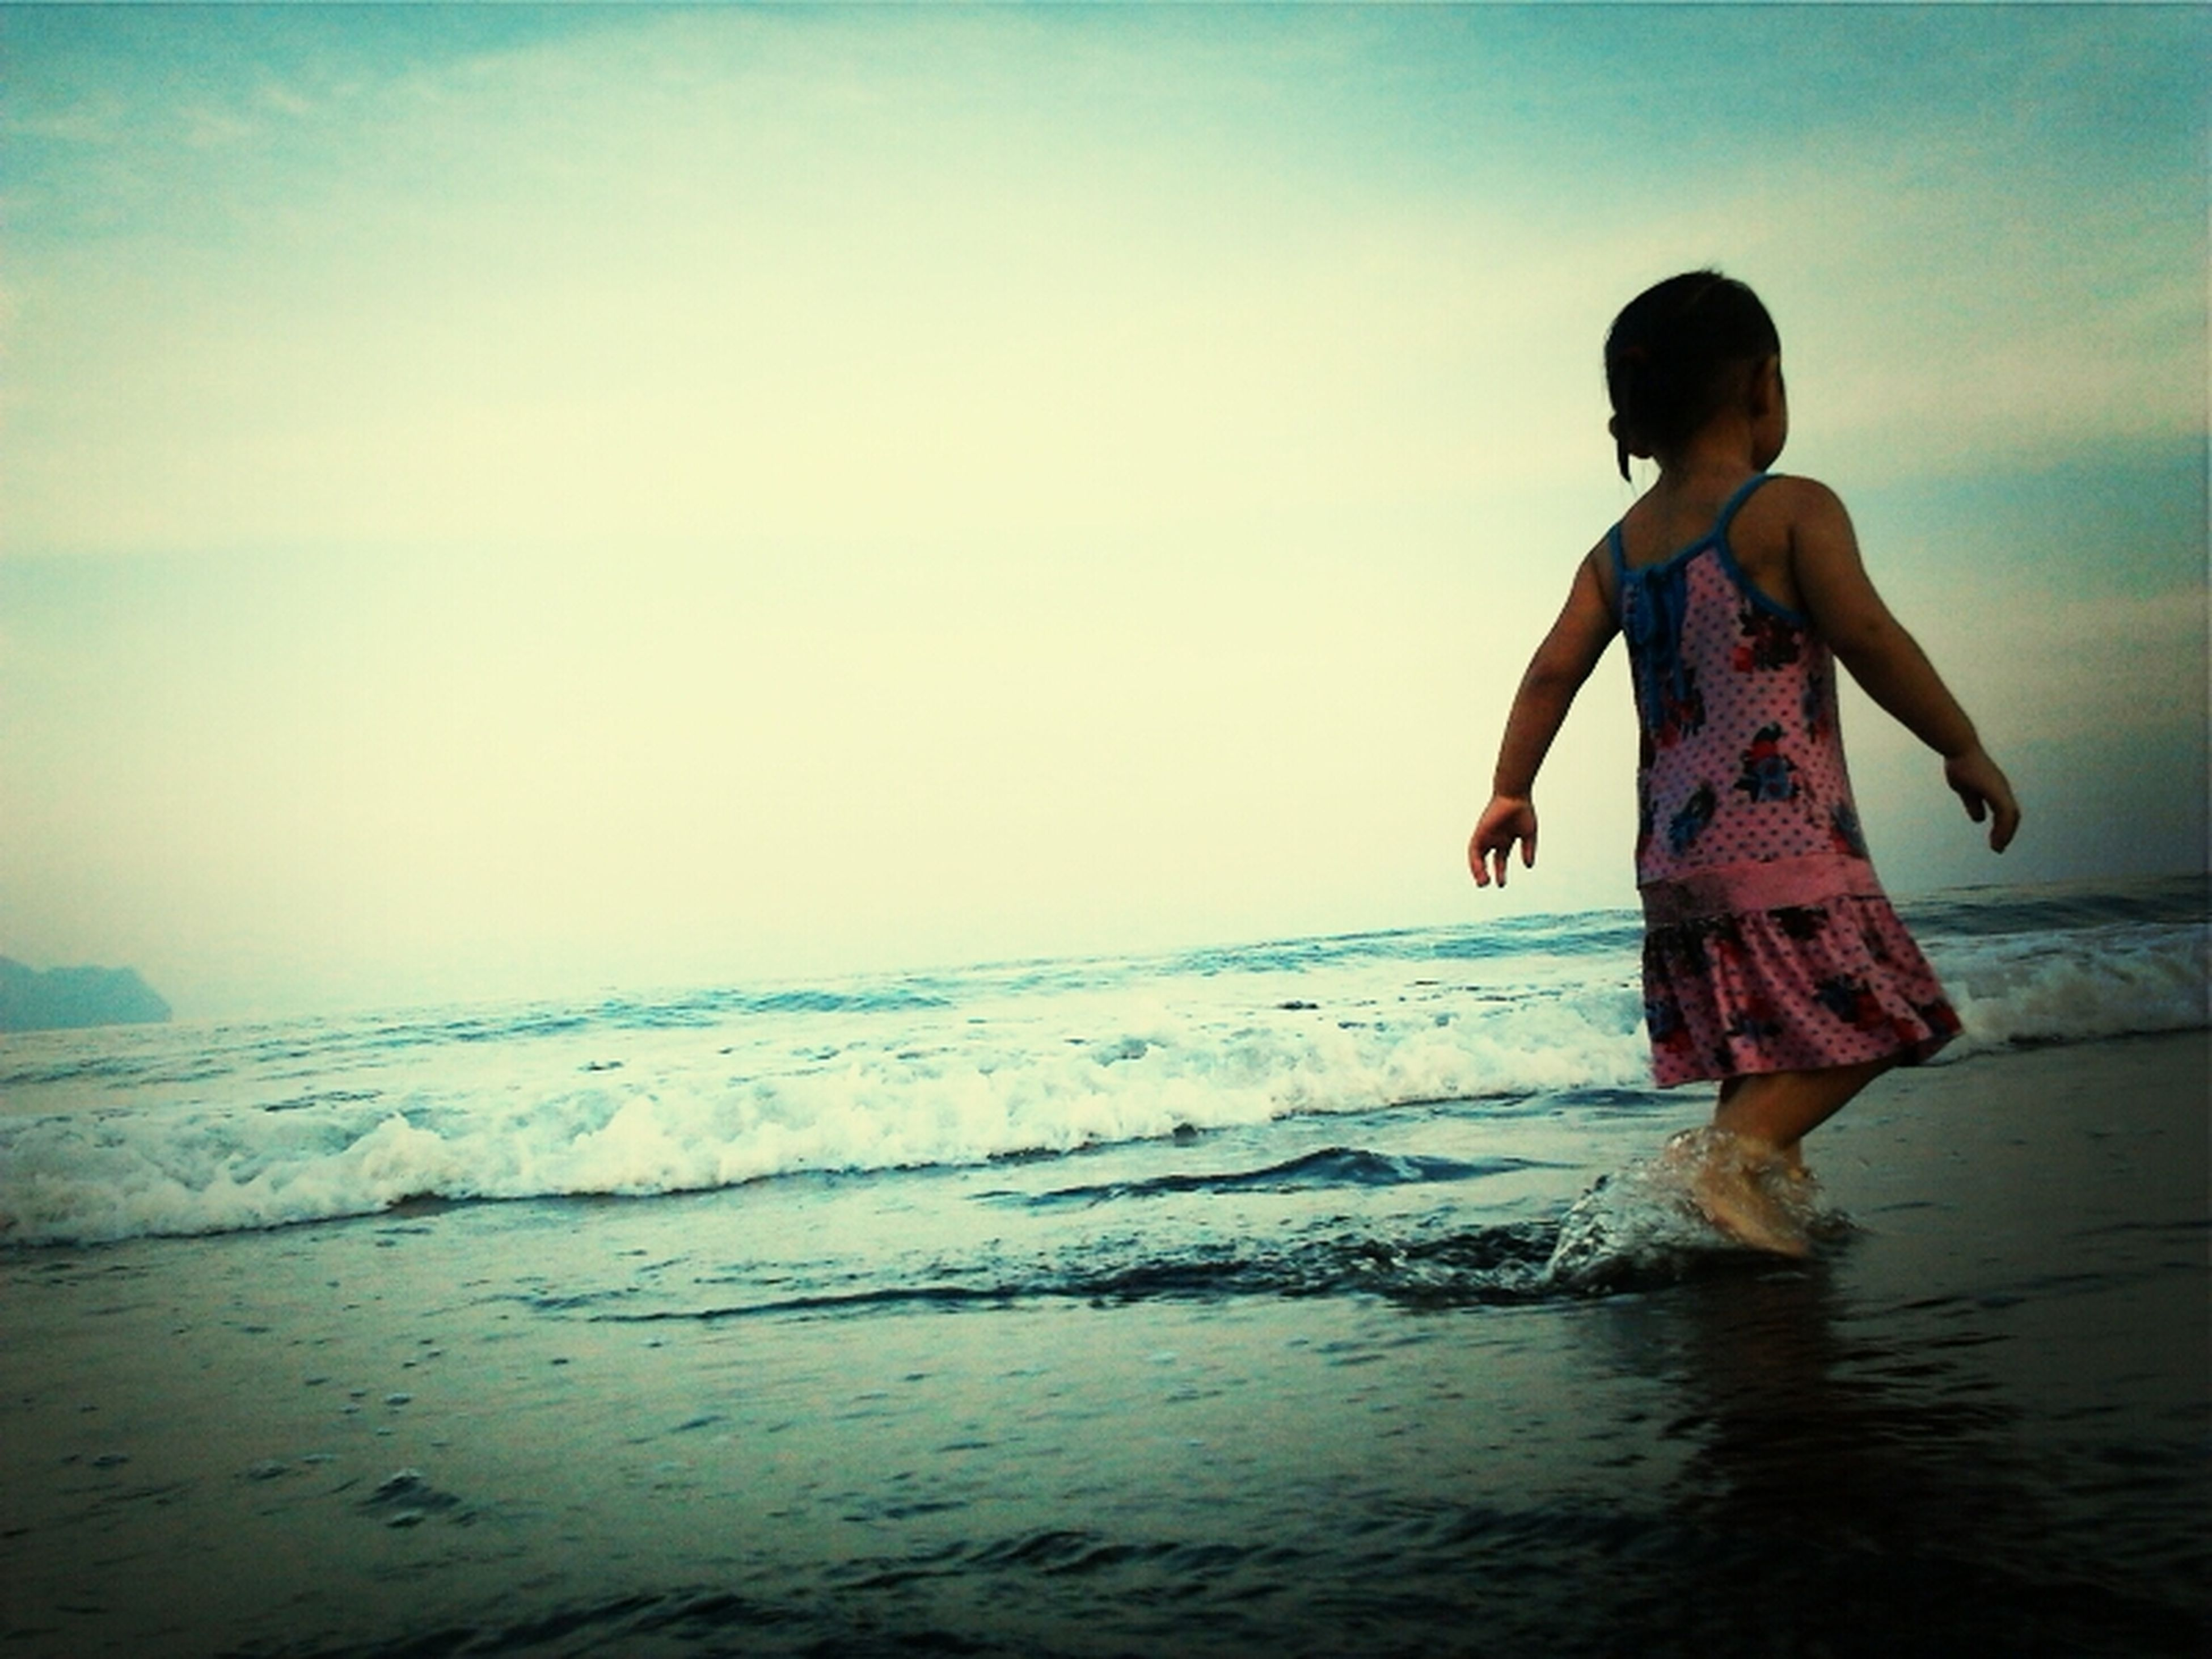 sea, water, beach, leisure activity, lifestyles, full length, horizon over water, childhood, shore, boys, vacations, standing, wave, elementary age, sky, casual clothing, girls, nature